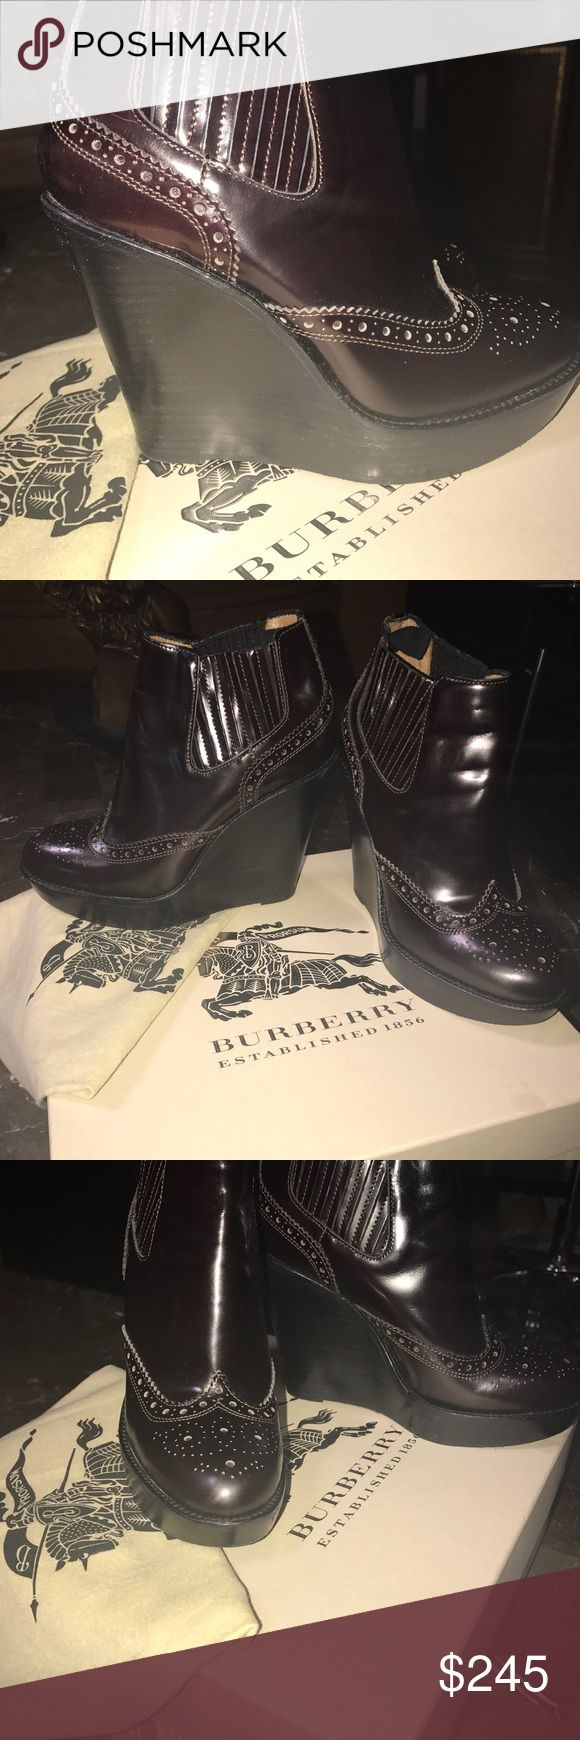 BURBERRY Brogue Chelsea detailed wedge ankle boots New condition / never used / box and dustbag included Burberry Shoes Ankle Boots & Booties